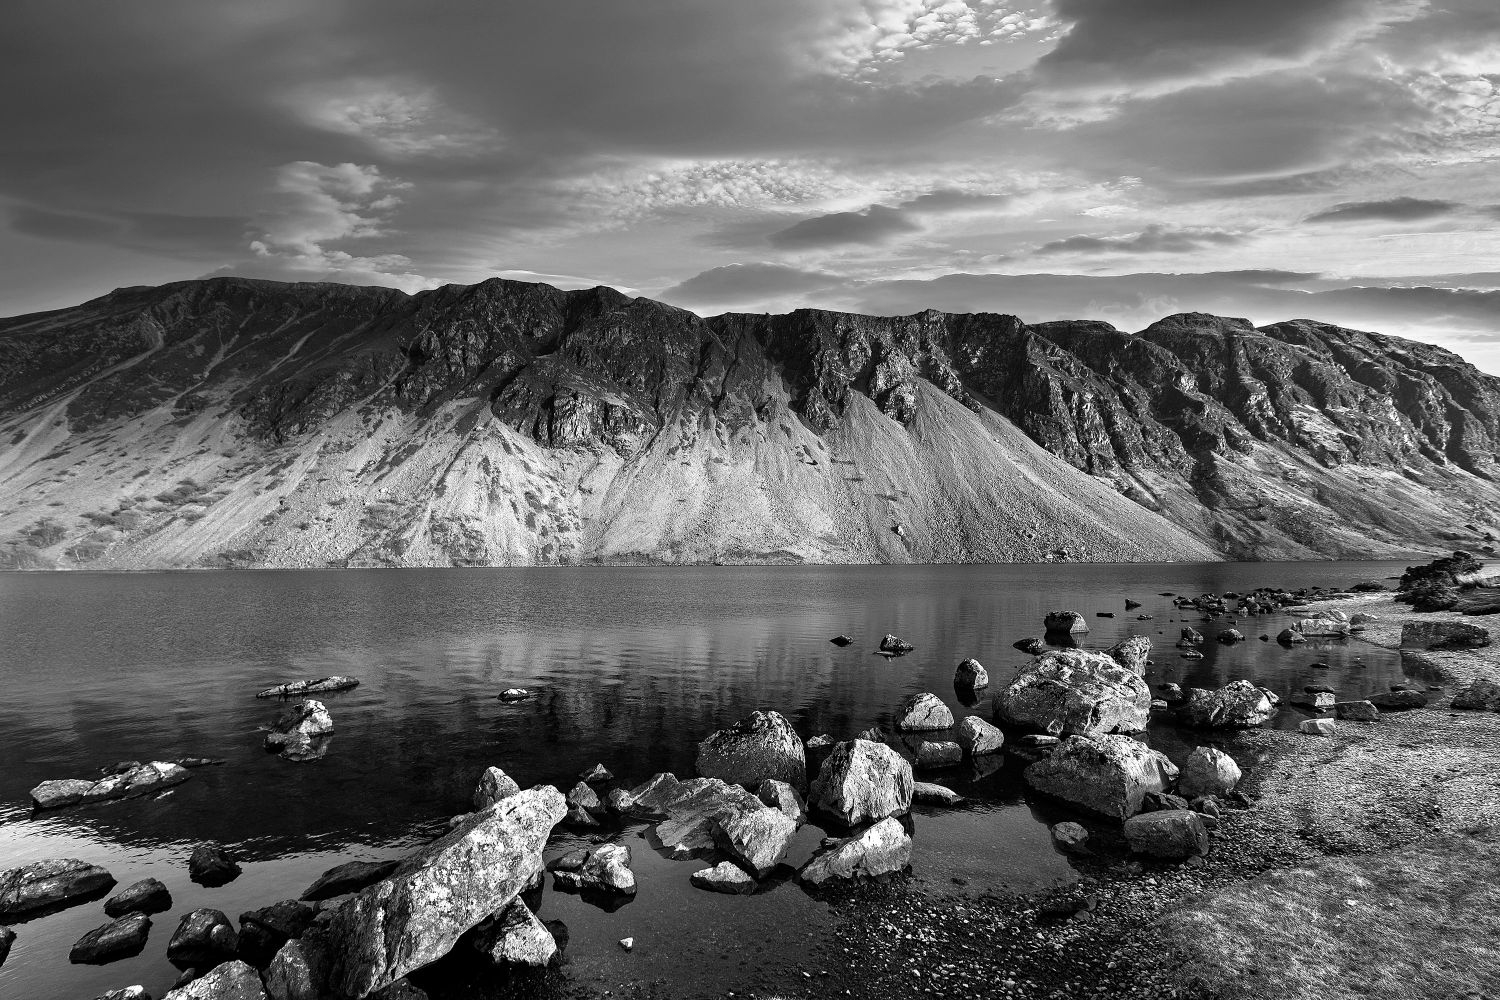 Sunset over the Wastwater Screes in Black and White by Martin Lawrence